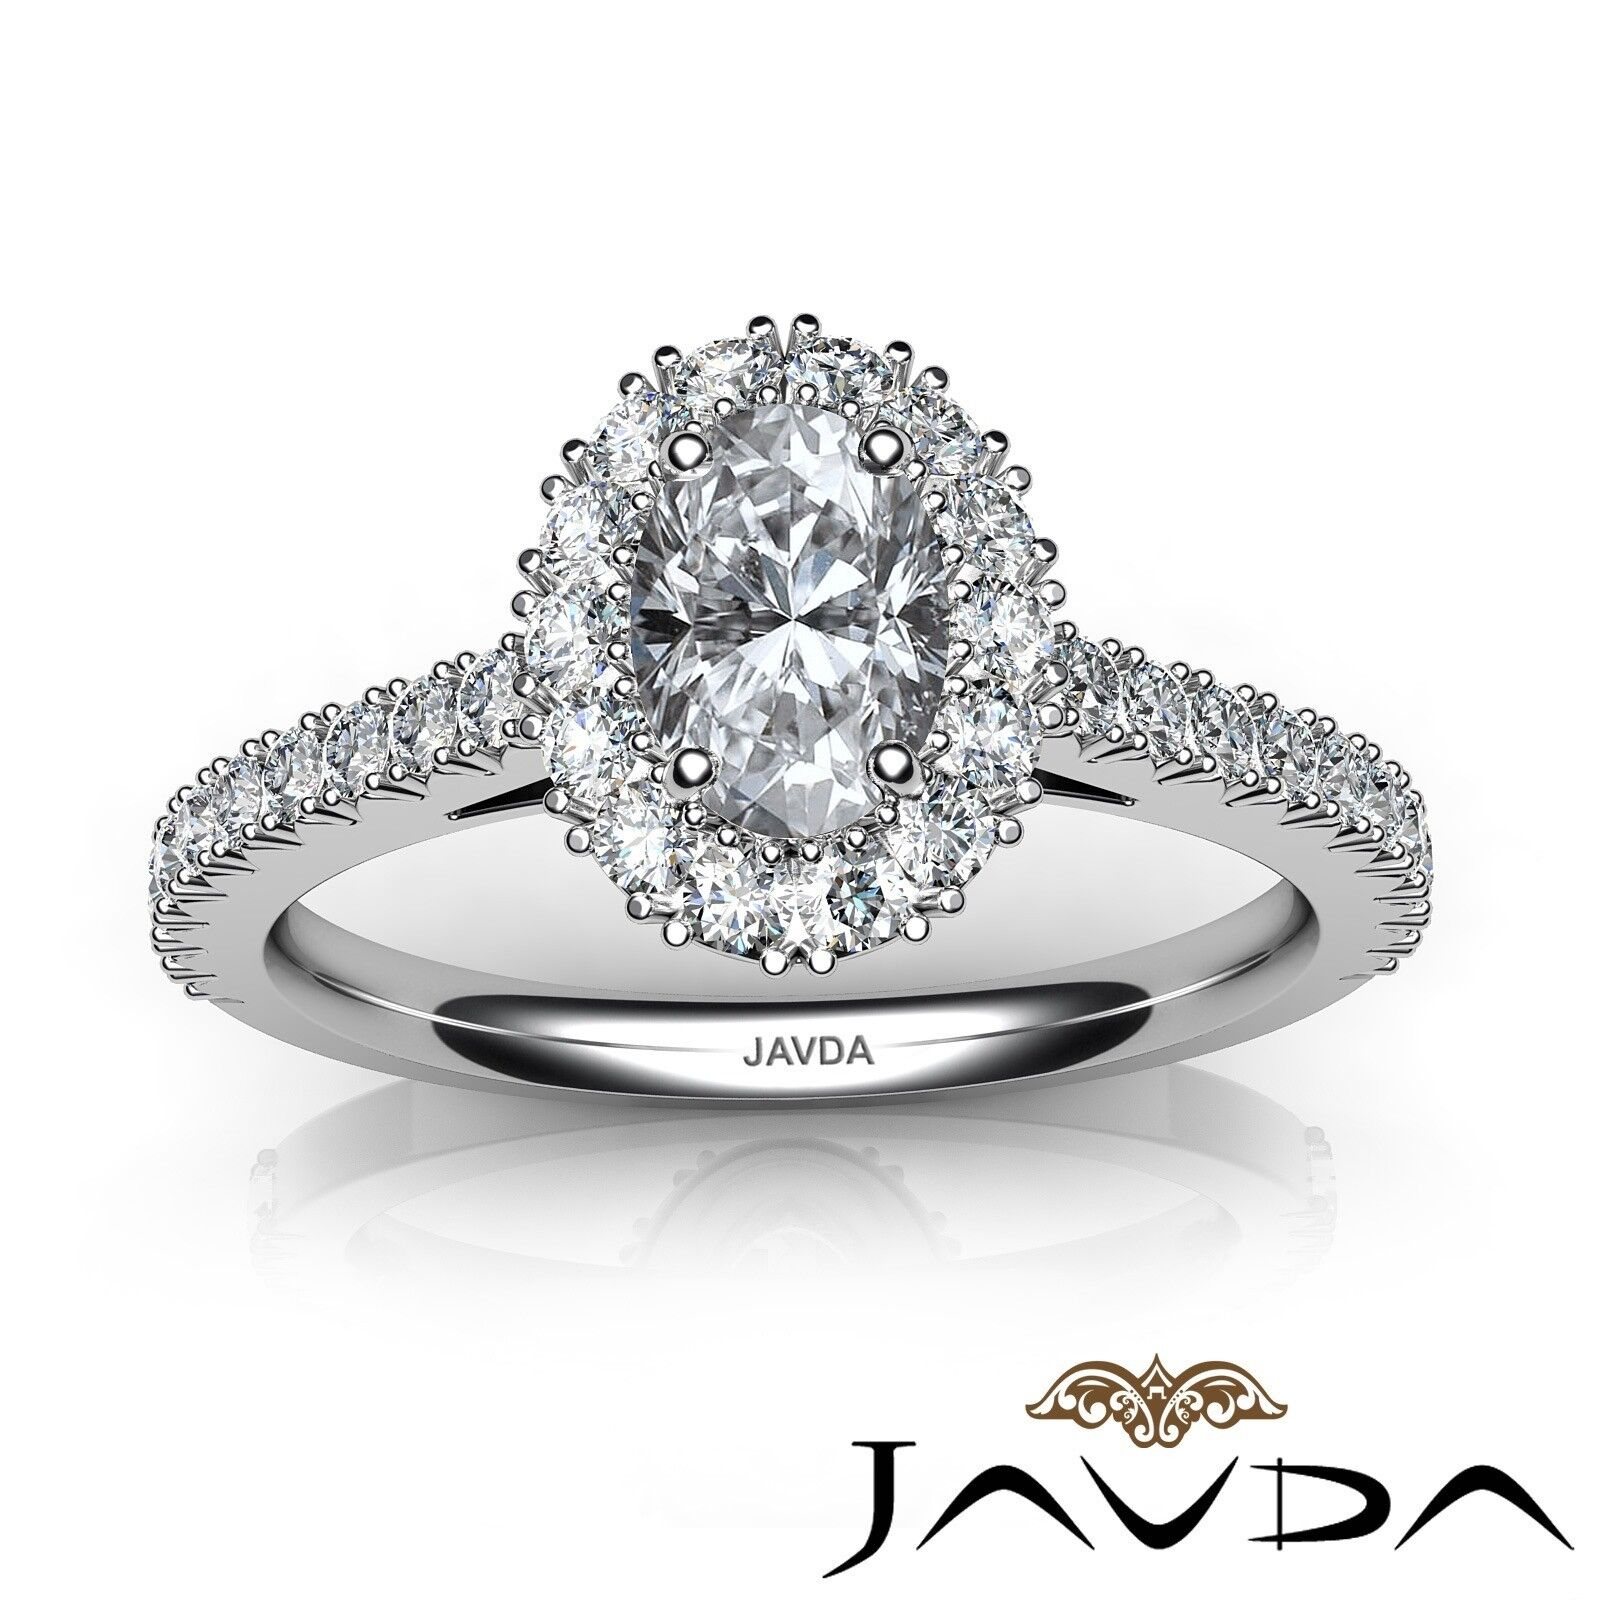 1.5ctw French V Cut Halo Pave Oval Diamond Engagement Ring GIA F-VVS2 White Gold 3